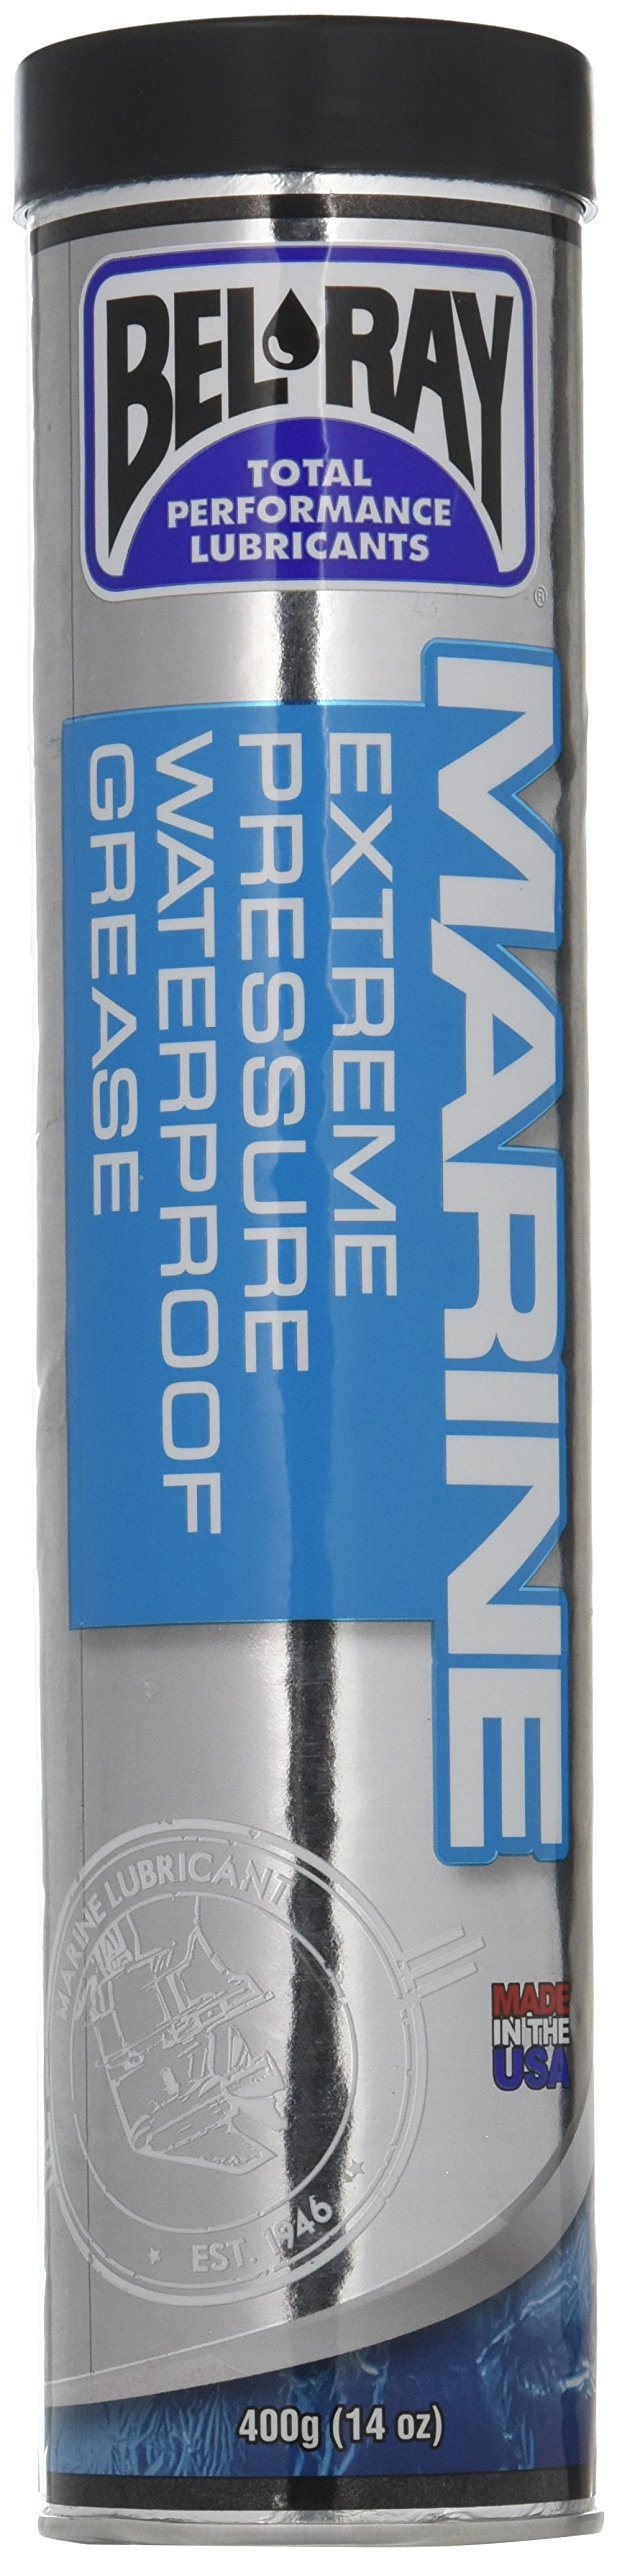 Bel Ray Extreme Pressure Waterproof Grease, 14 oz. Cartridge 99710-CG (1) by Bel Ray